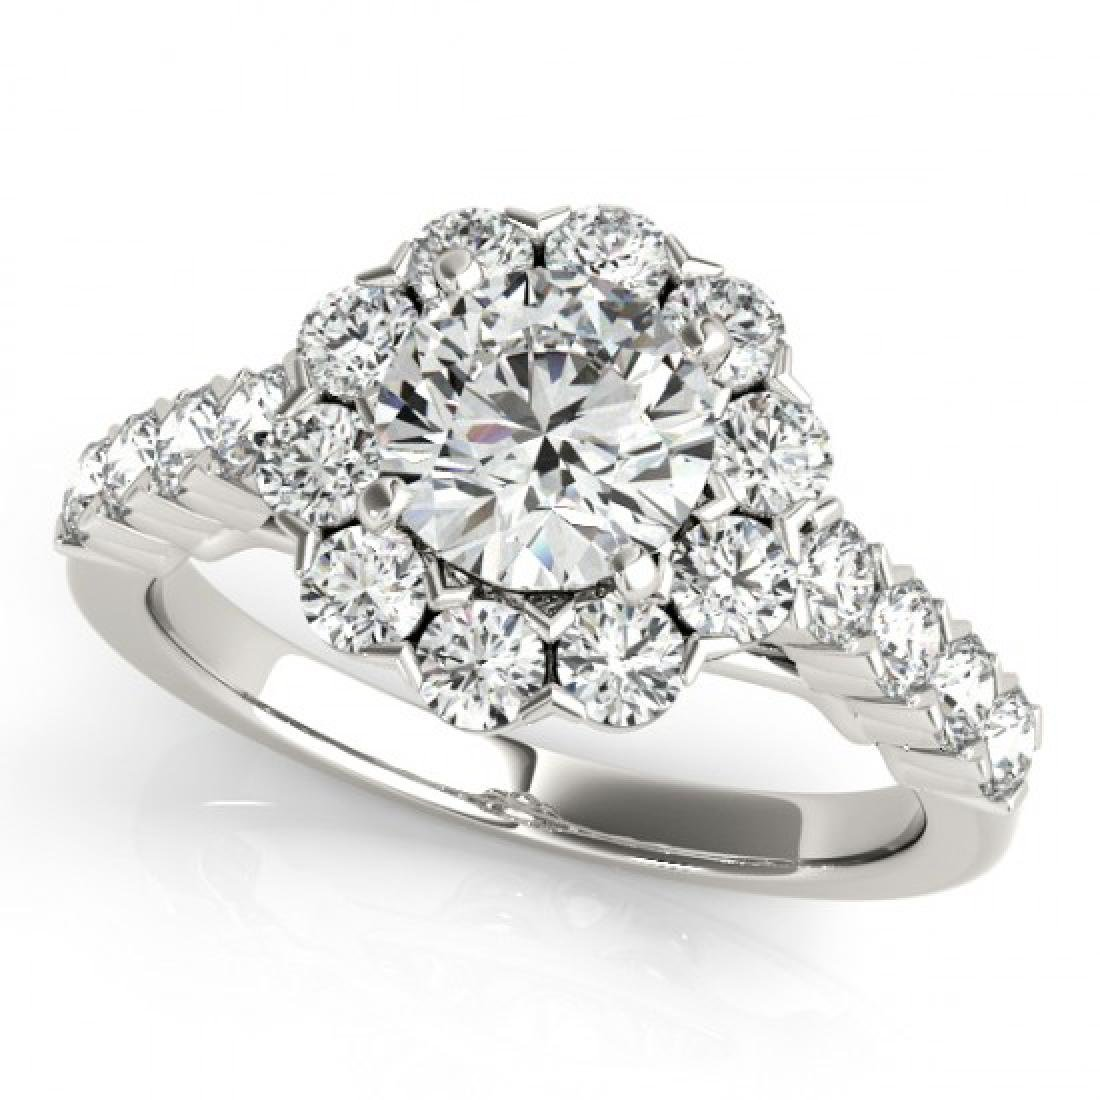 2.1 CTW Certified VS/SI Diamond Solitaire Halo Ring 14K